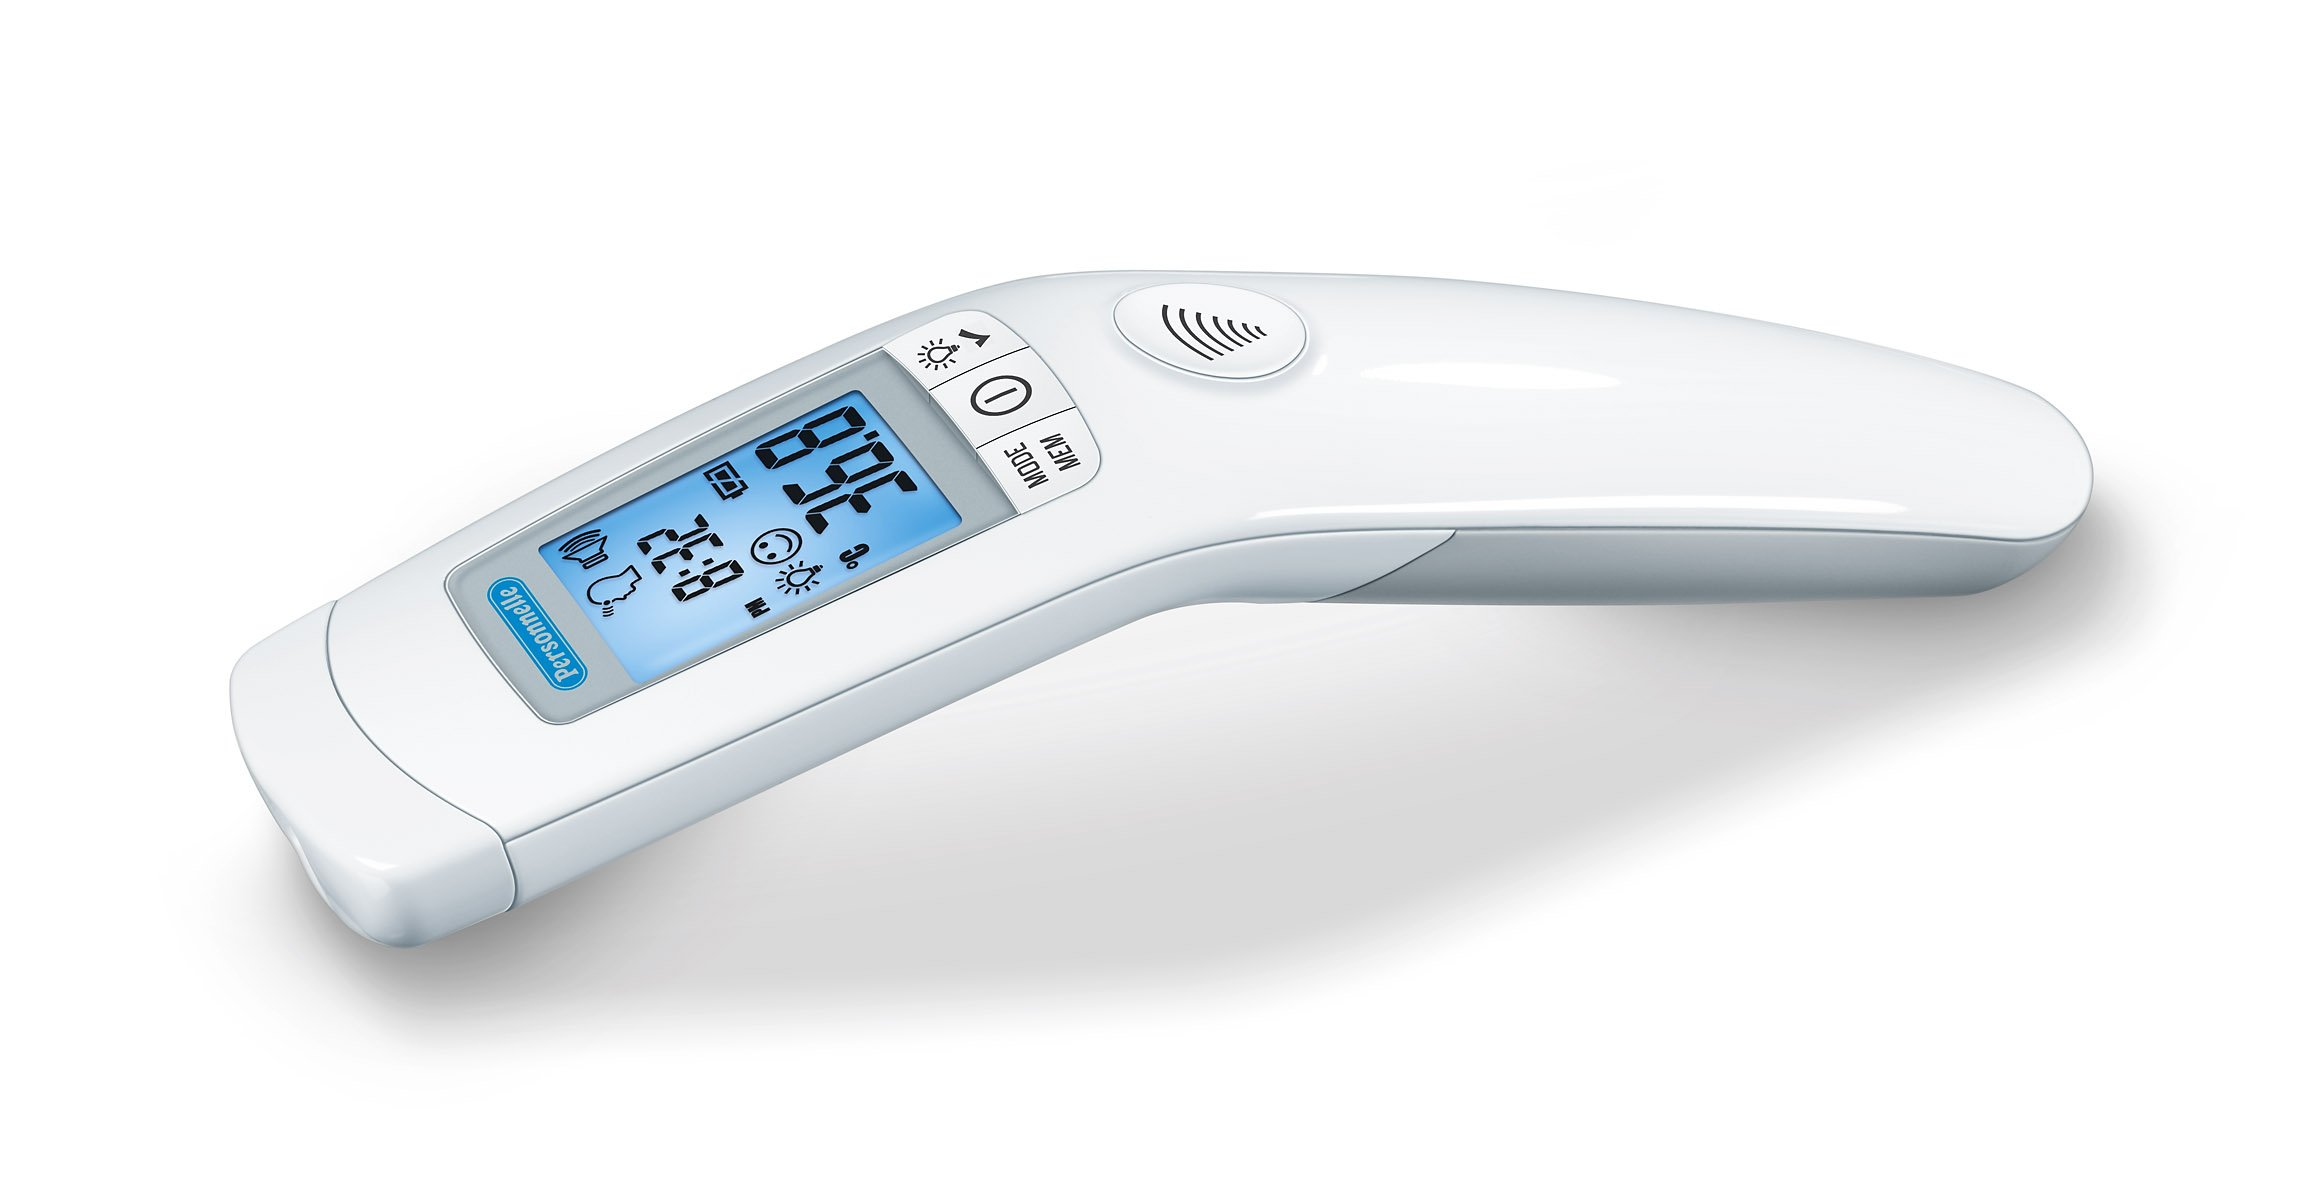 Personnelle High Accuracy Forehead and Object Thermometer, Simply Point and Click to Receive a Reading, Safe and Hygienic, For Infants, Children and Adults, FT90P